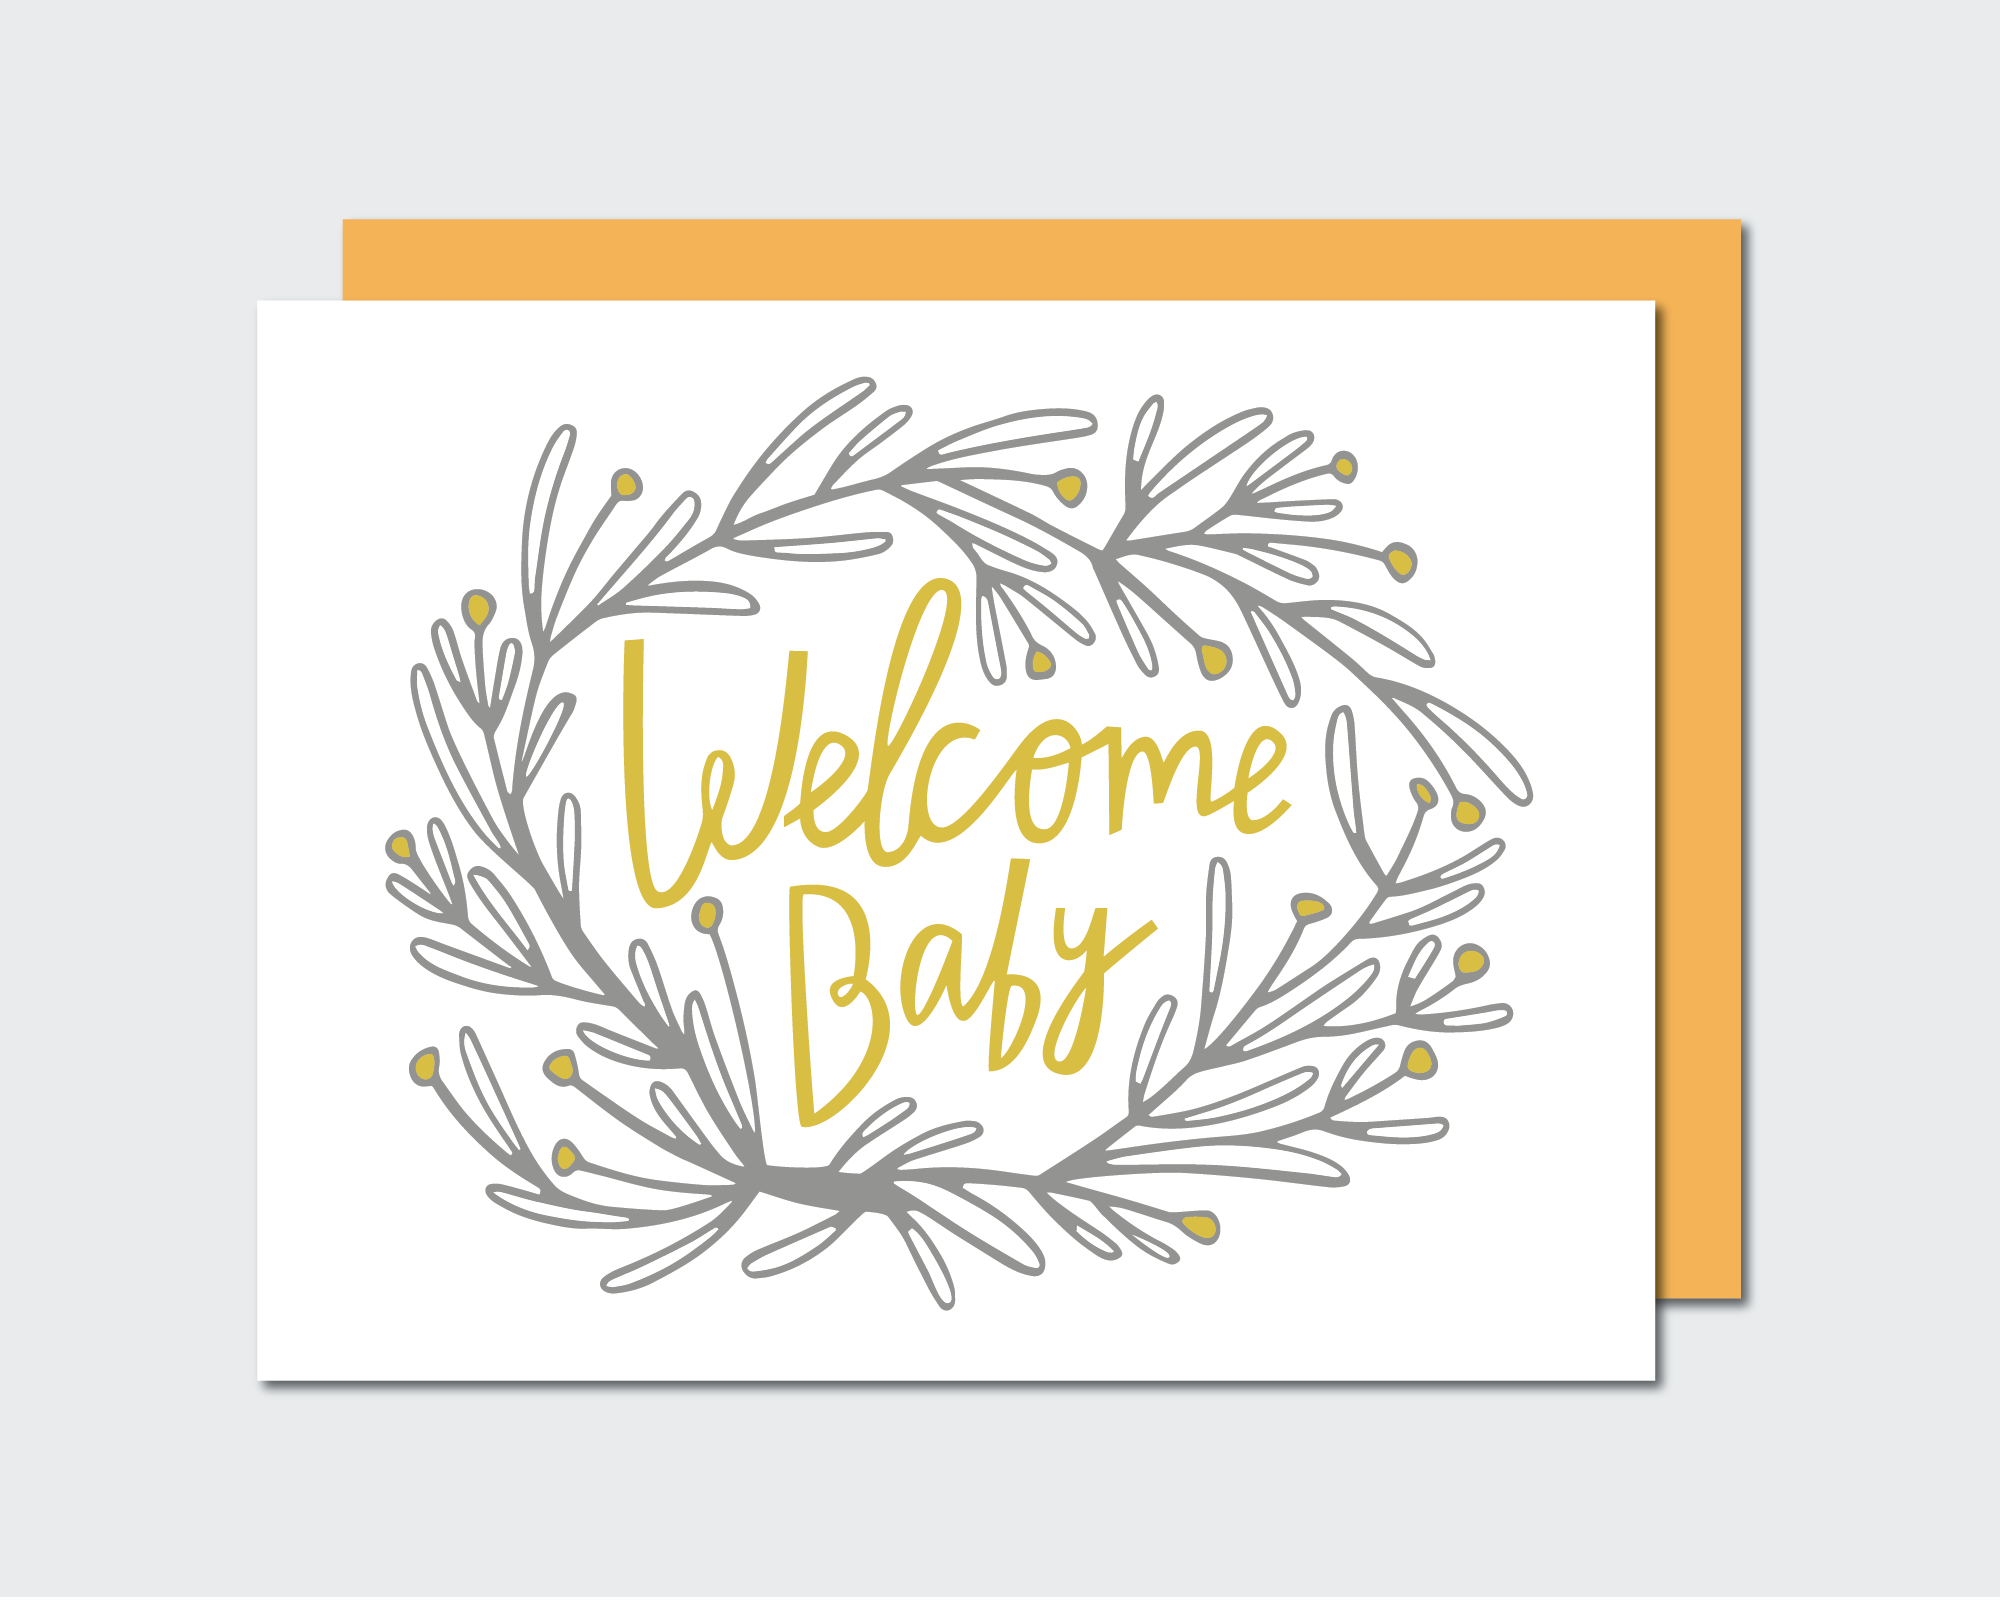 GCK001 (WELCOME BABY)